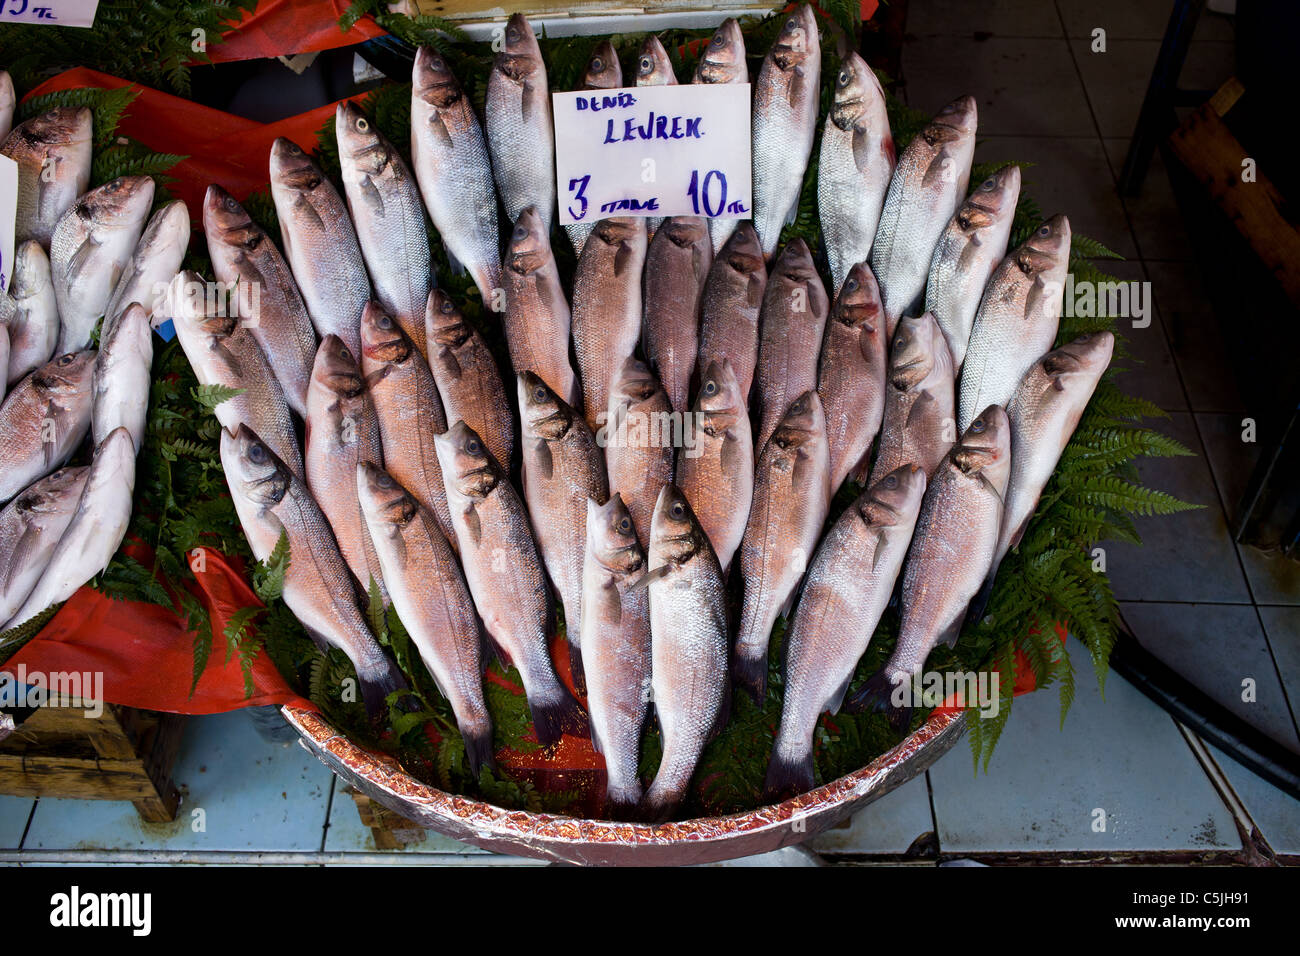 fish market stall in istanbul turkey with fresh sea bass